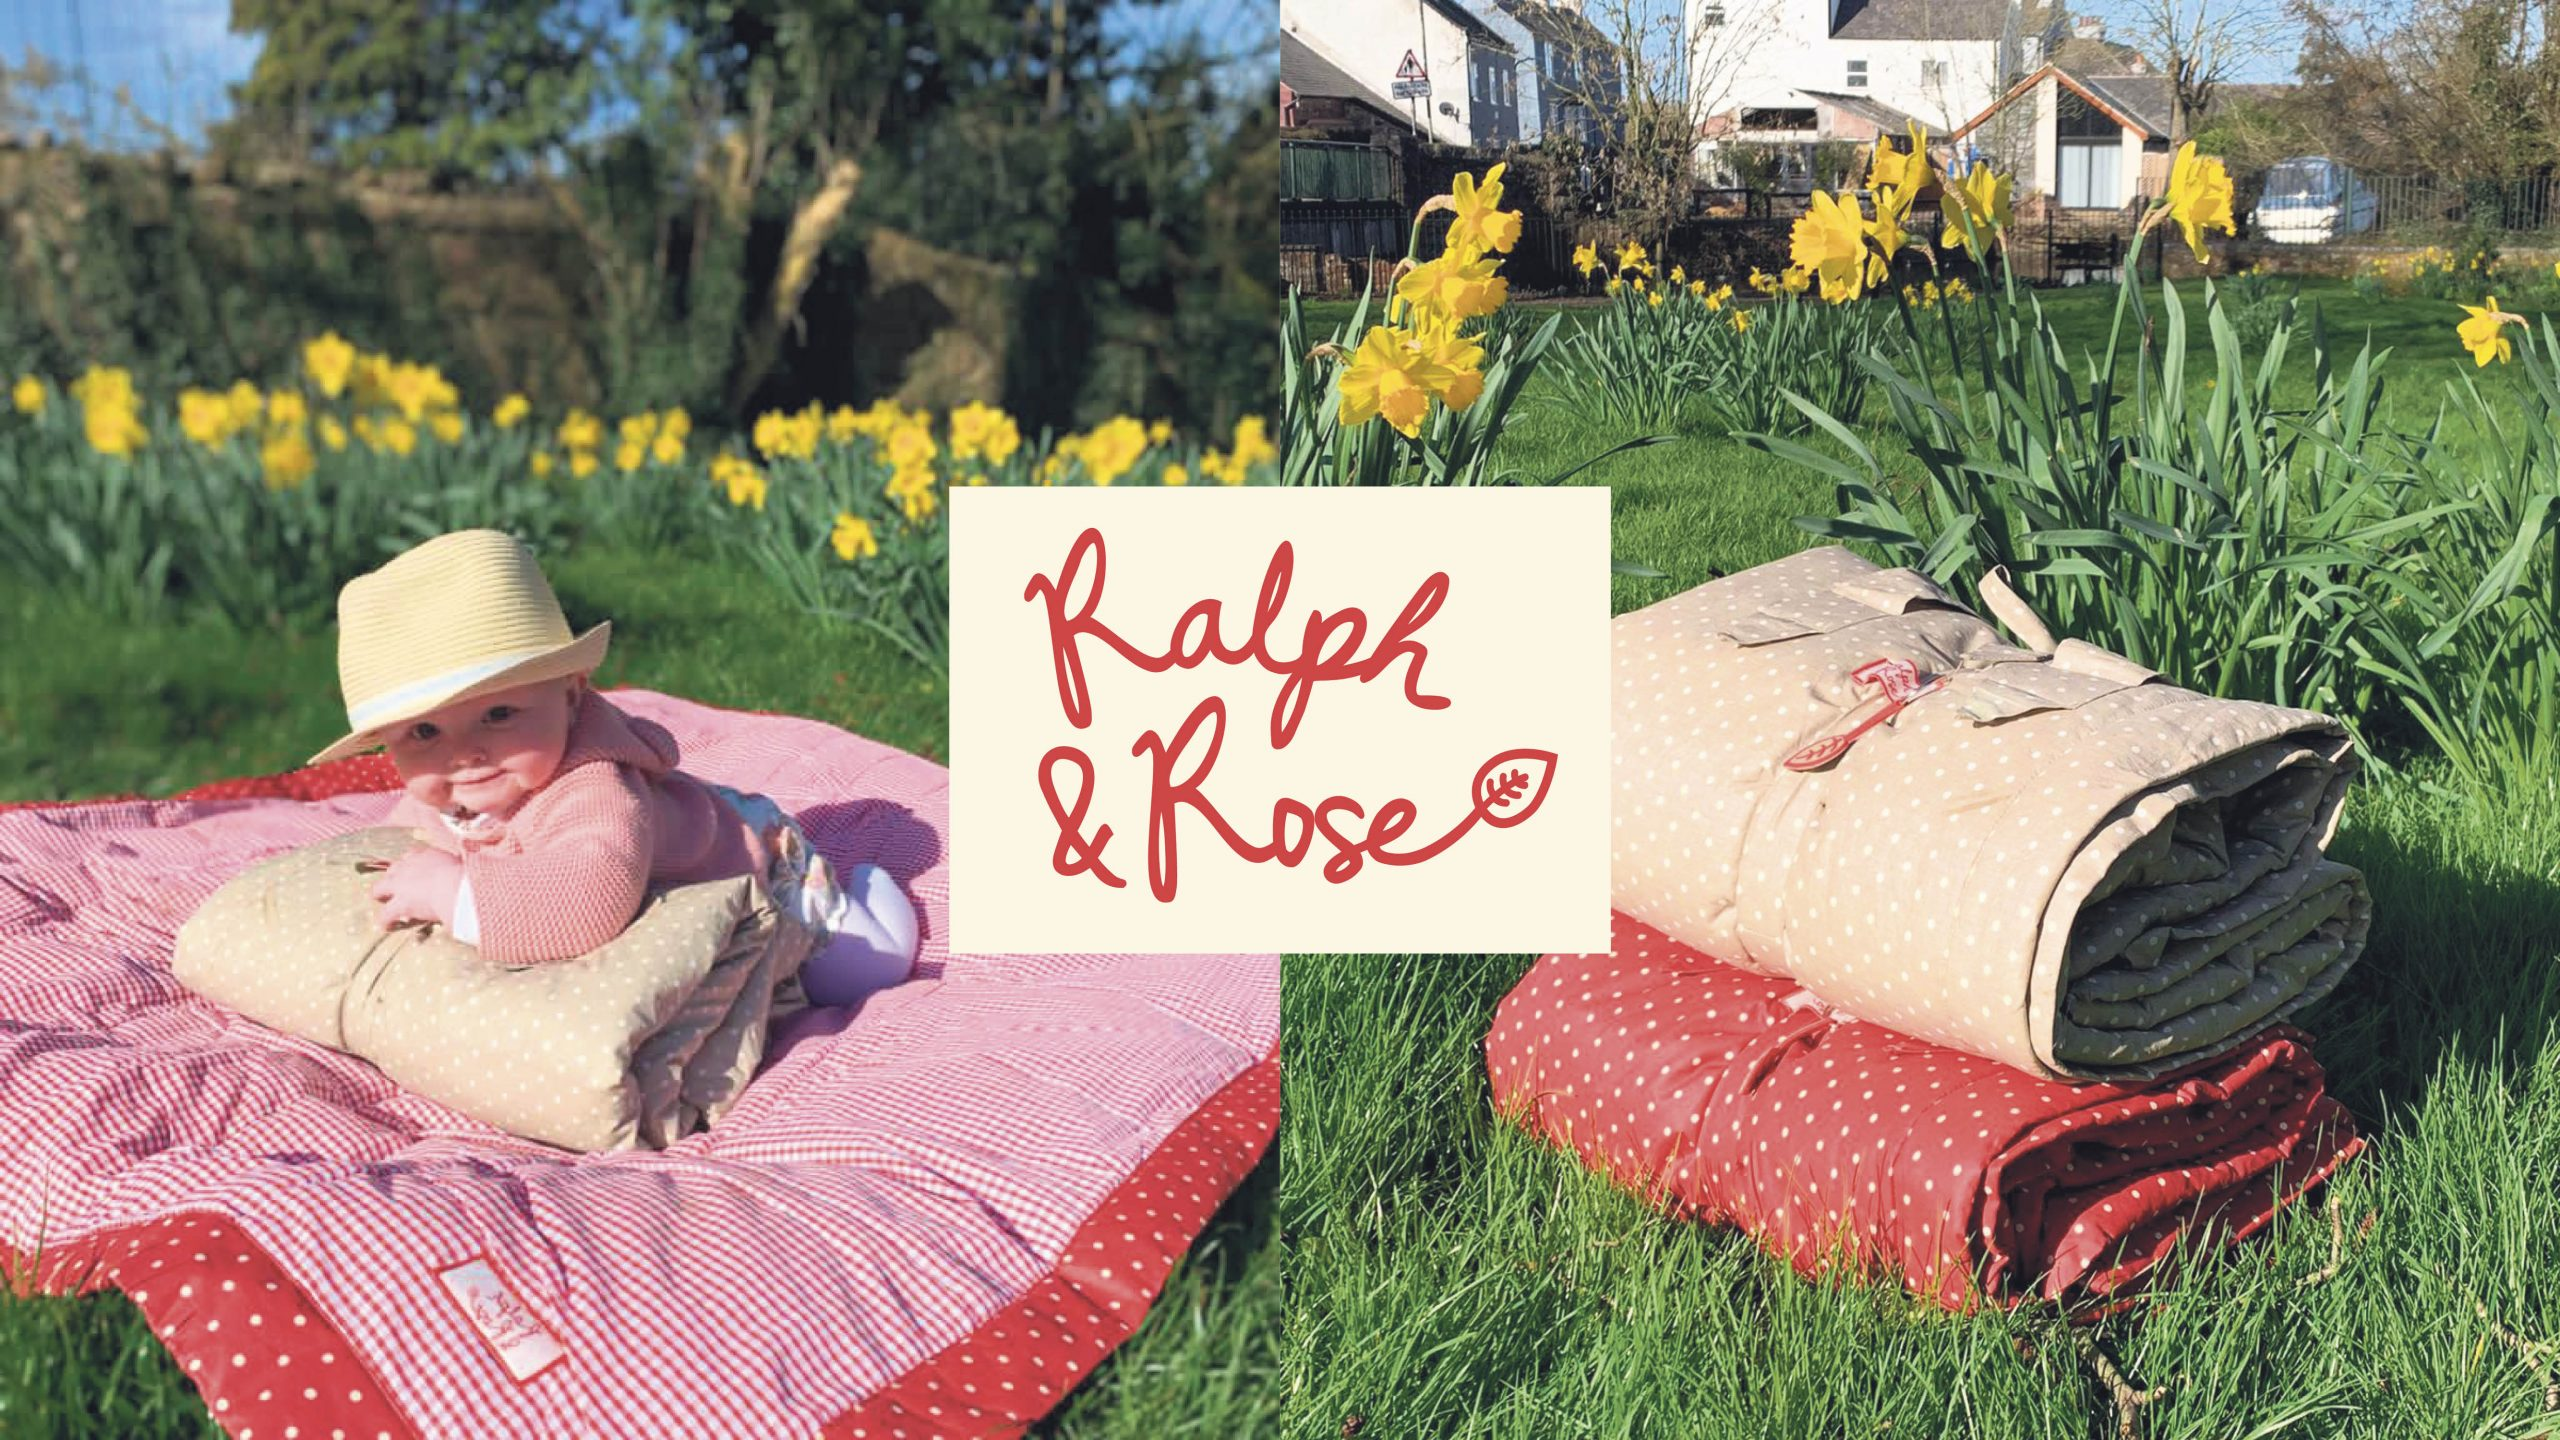 Win the Ralph & Rose ultimate picnic blanket Worth £45!